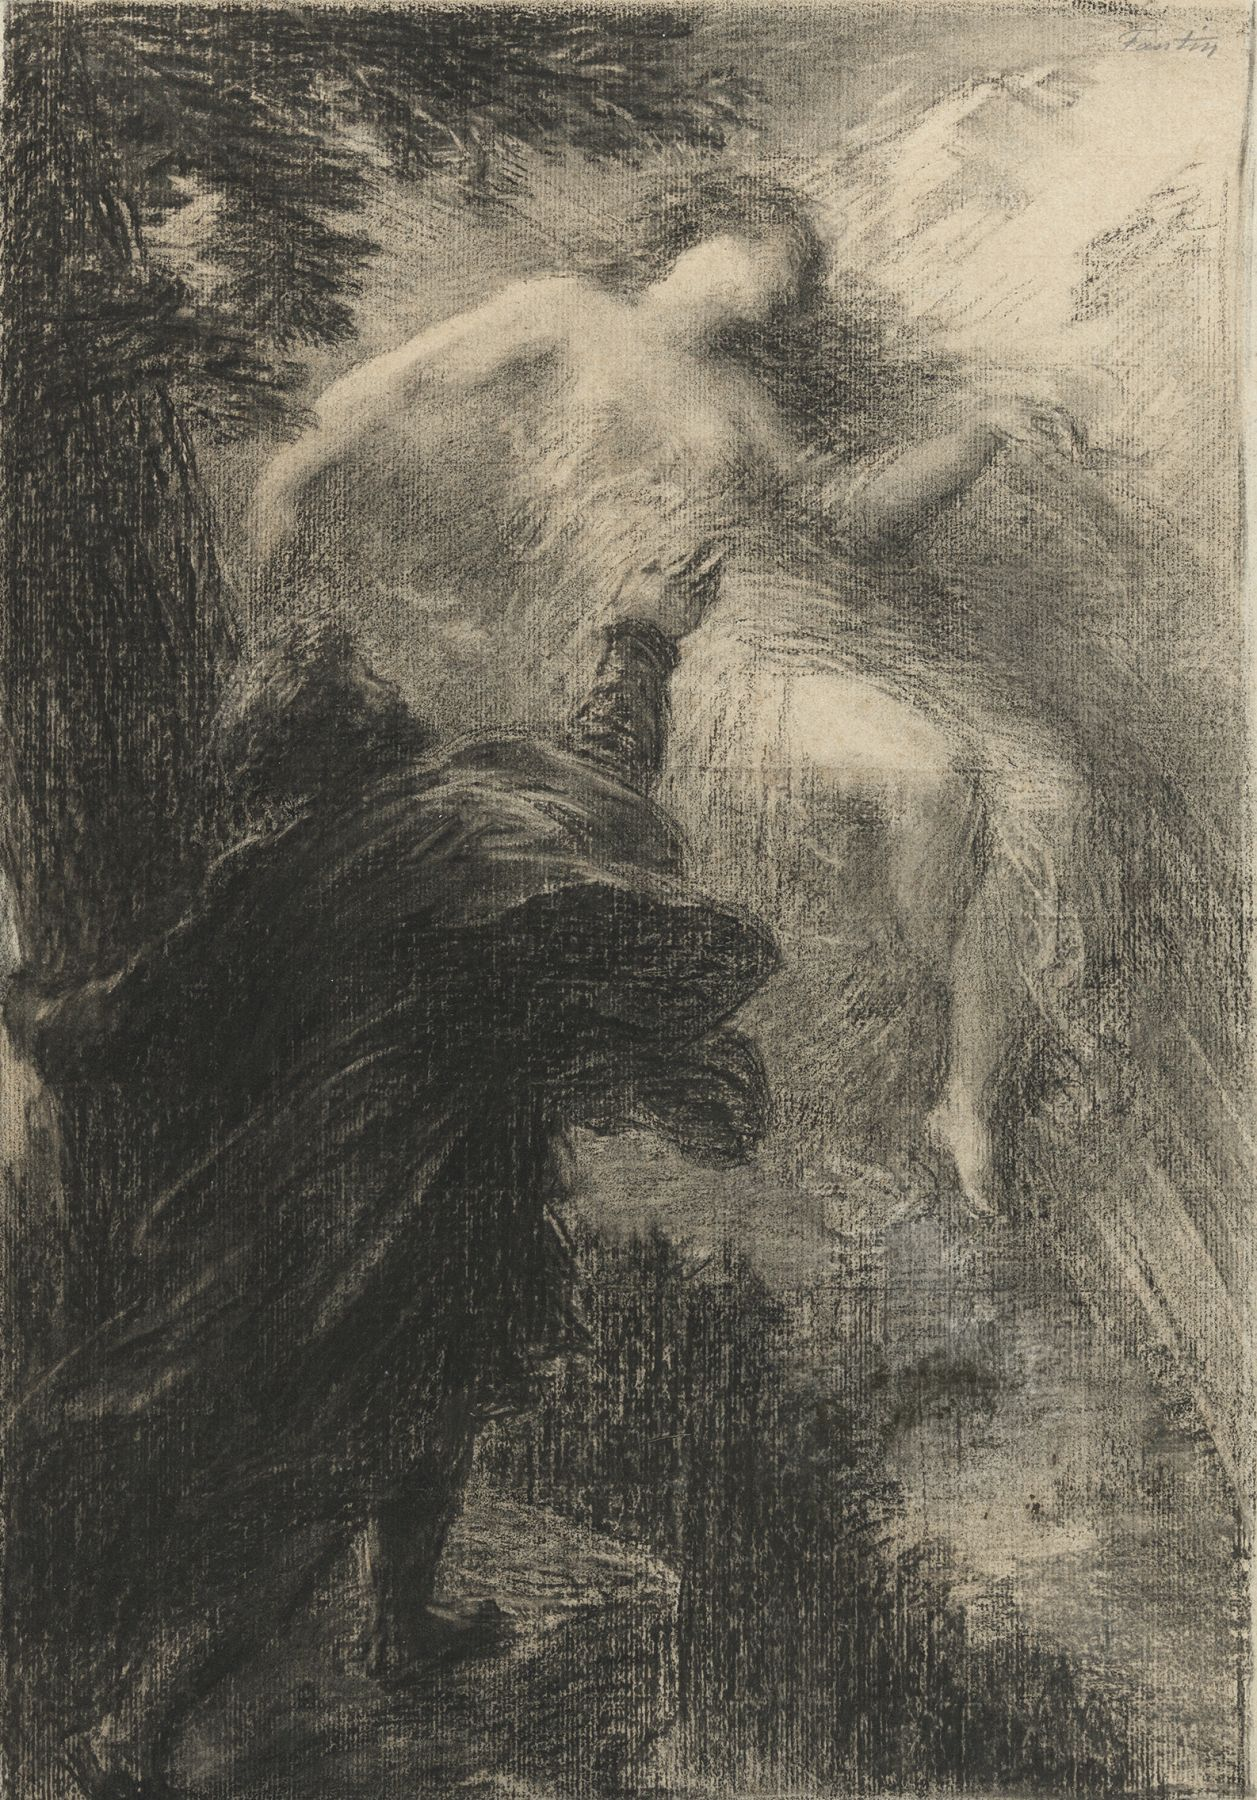 Henri Fantin-Latour Study for the second plate of La Fée des Alpes (Manfred), ca. 1885 Charcoal on paper 24 1/2 x 18 1/4 inches